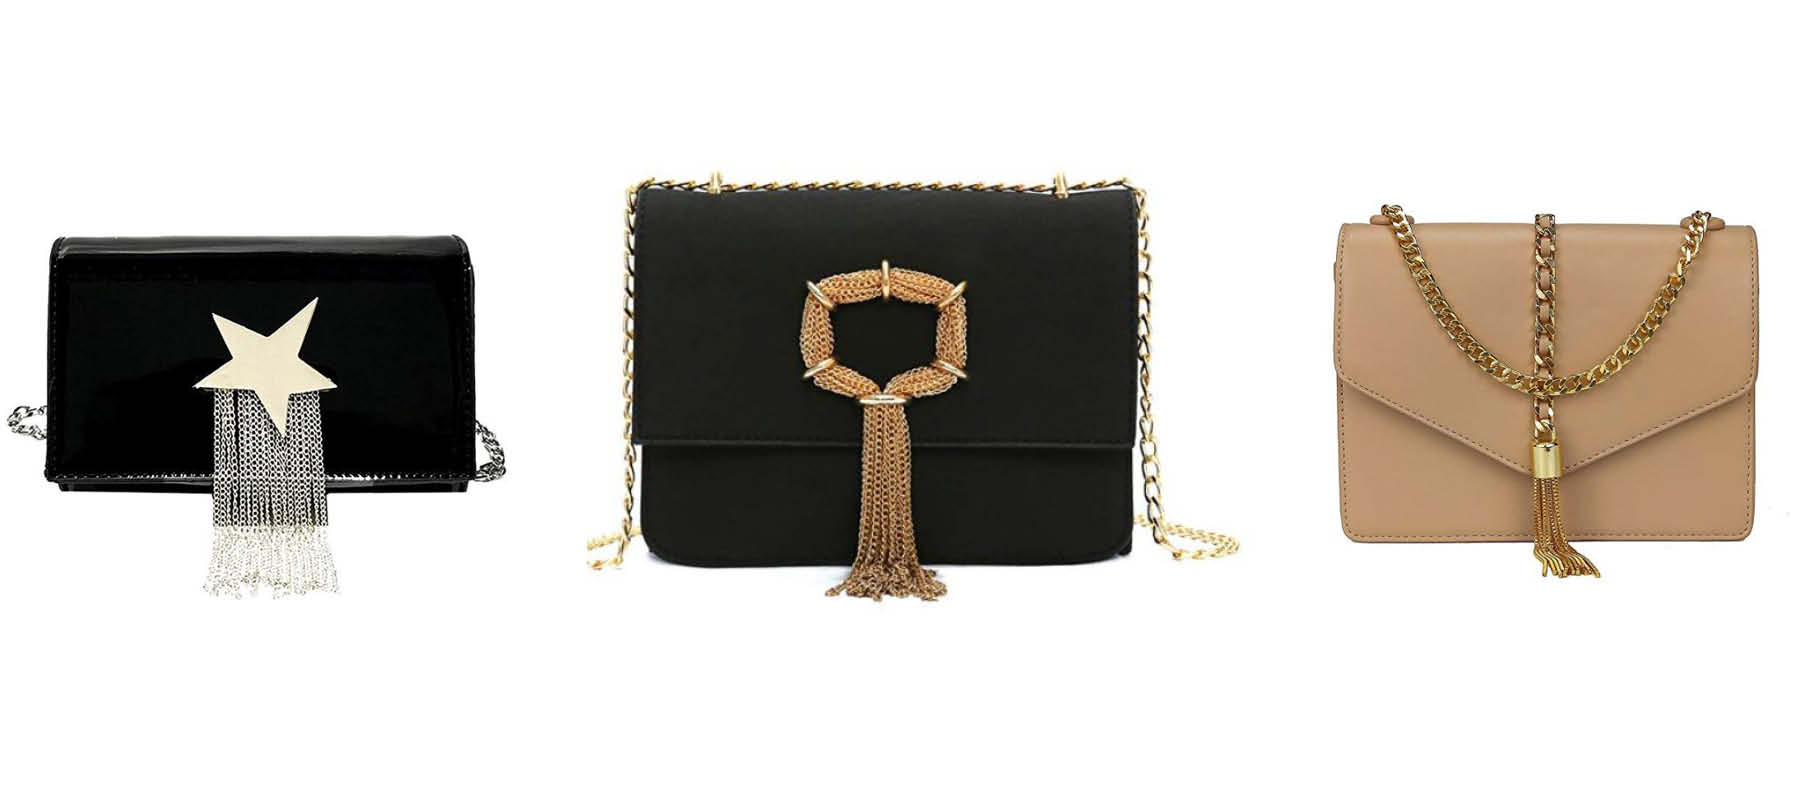 b3c51a4862 Where to Buy YSL Tassel Bag Dupes as Low as $18 | YSL Bag Replicas